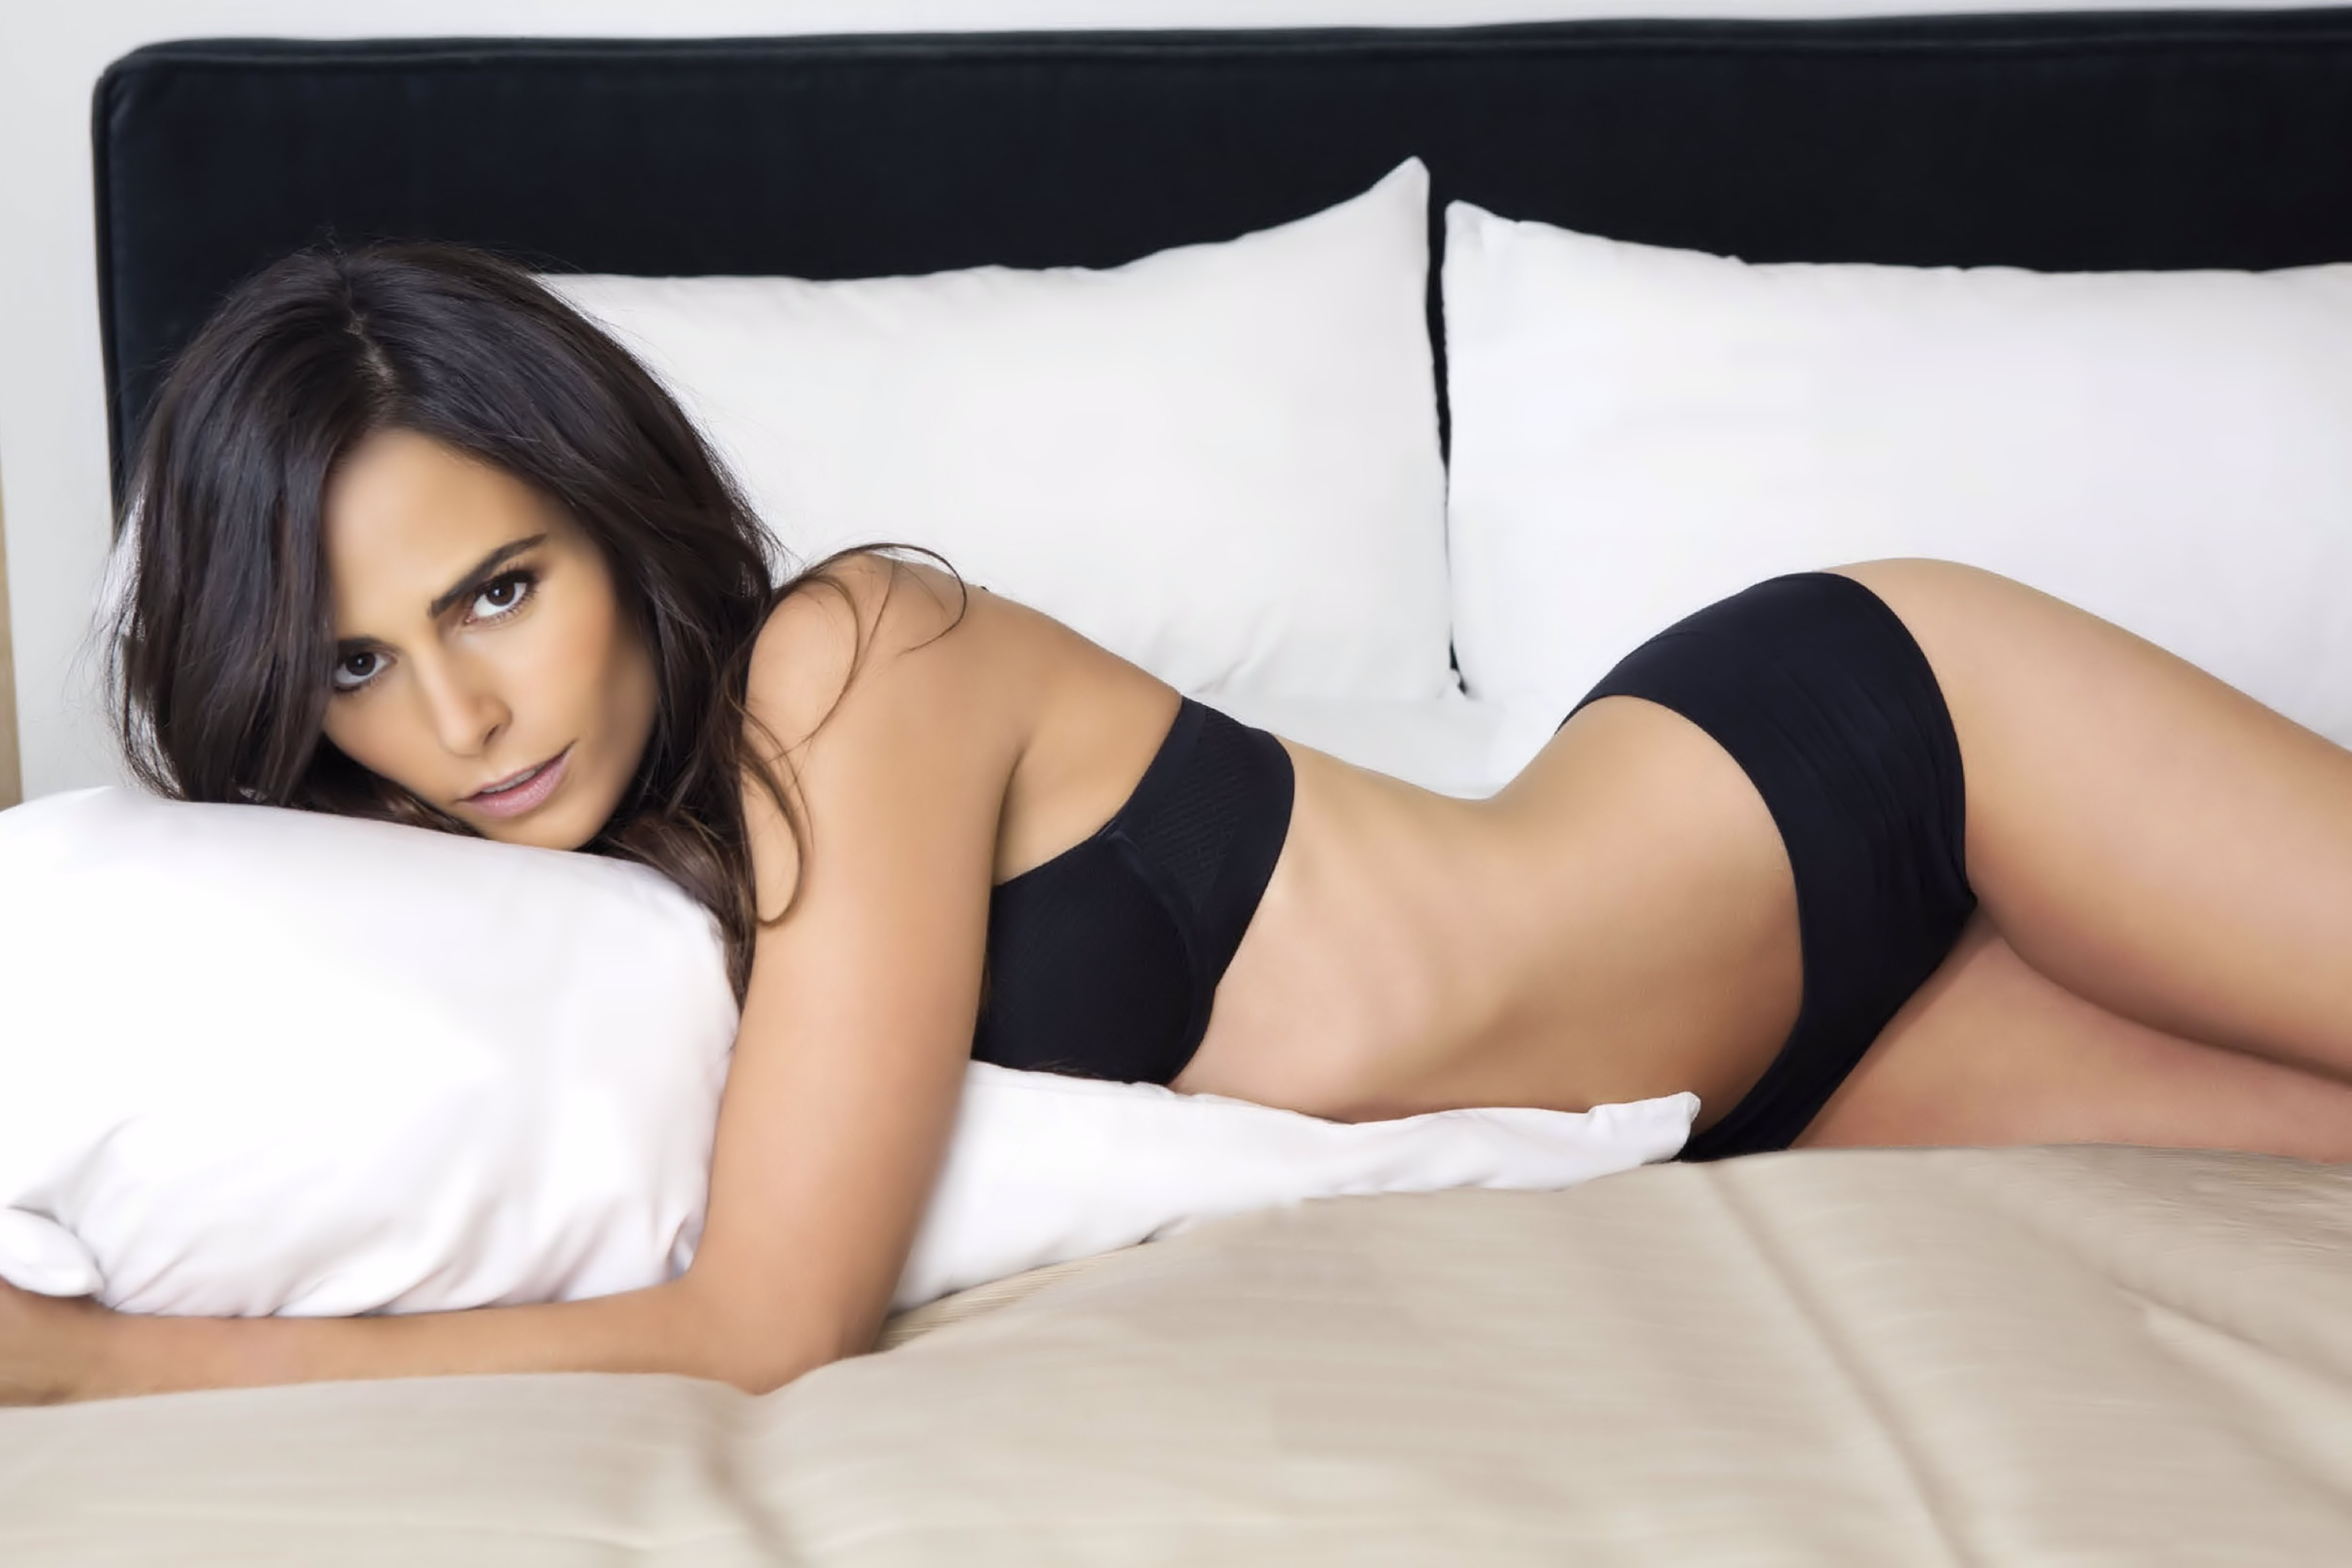 Jordana Brewster Hot Photos, Leaked Near-Nude Pics